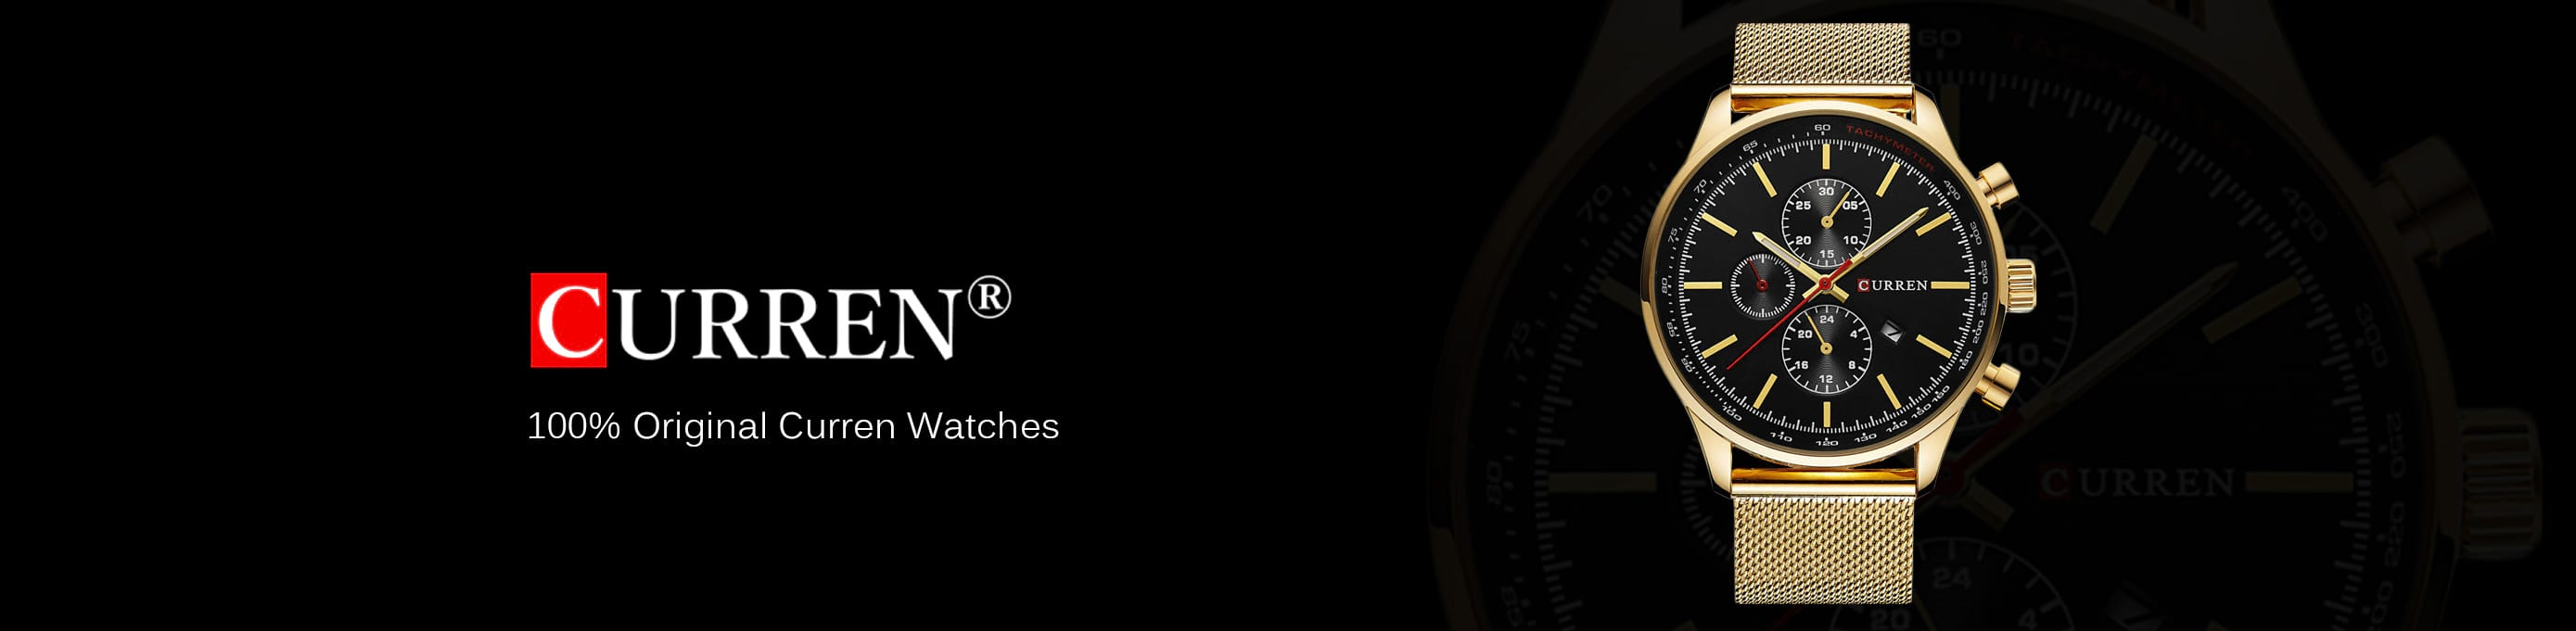 All Curren Watches in Bangladesh Banner Image